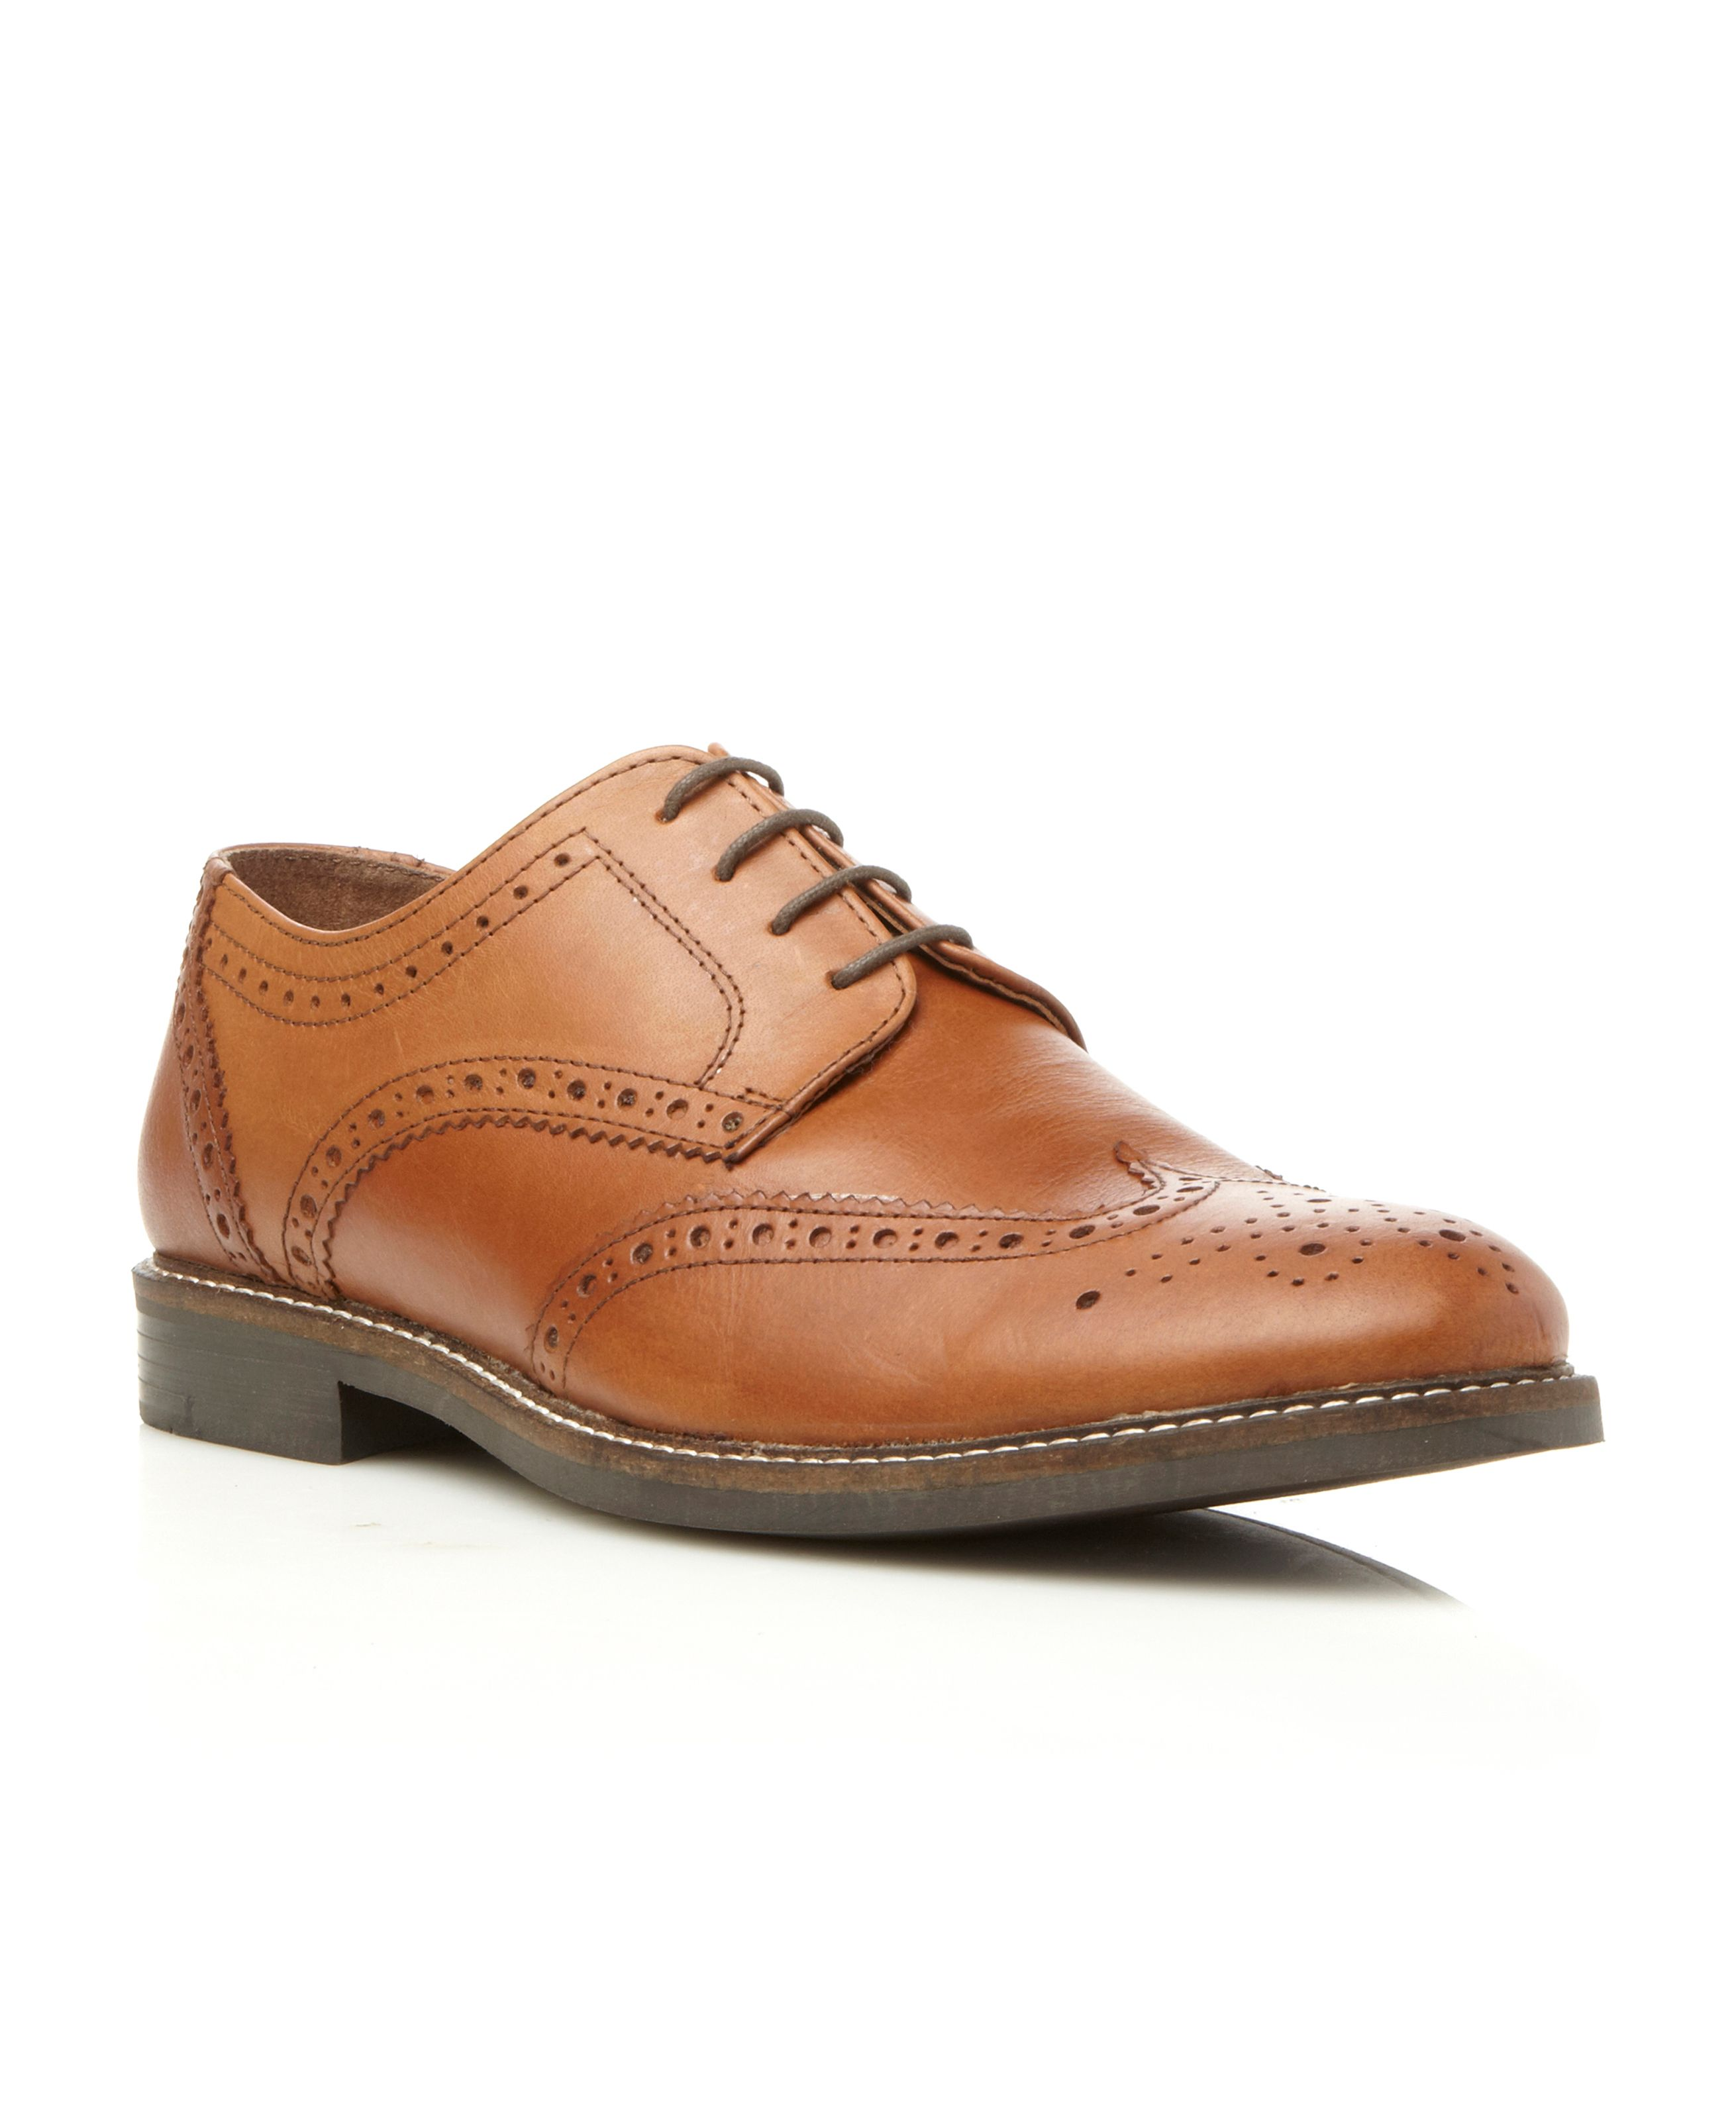 Allaster formal shoes